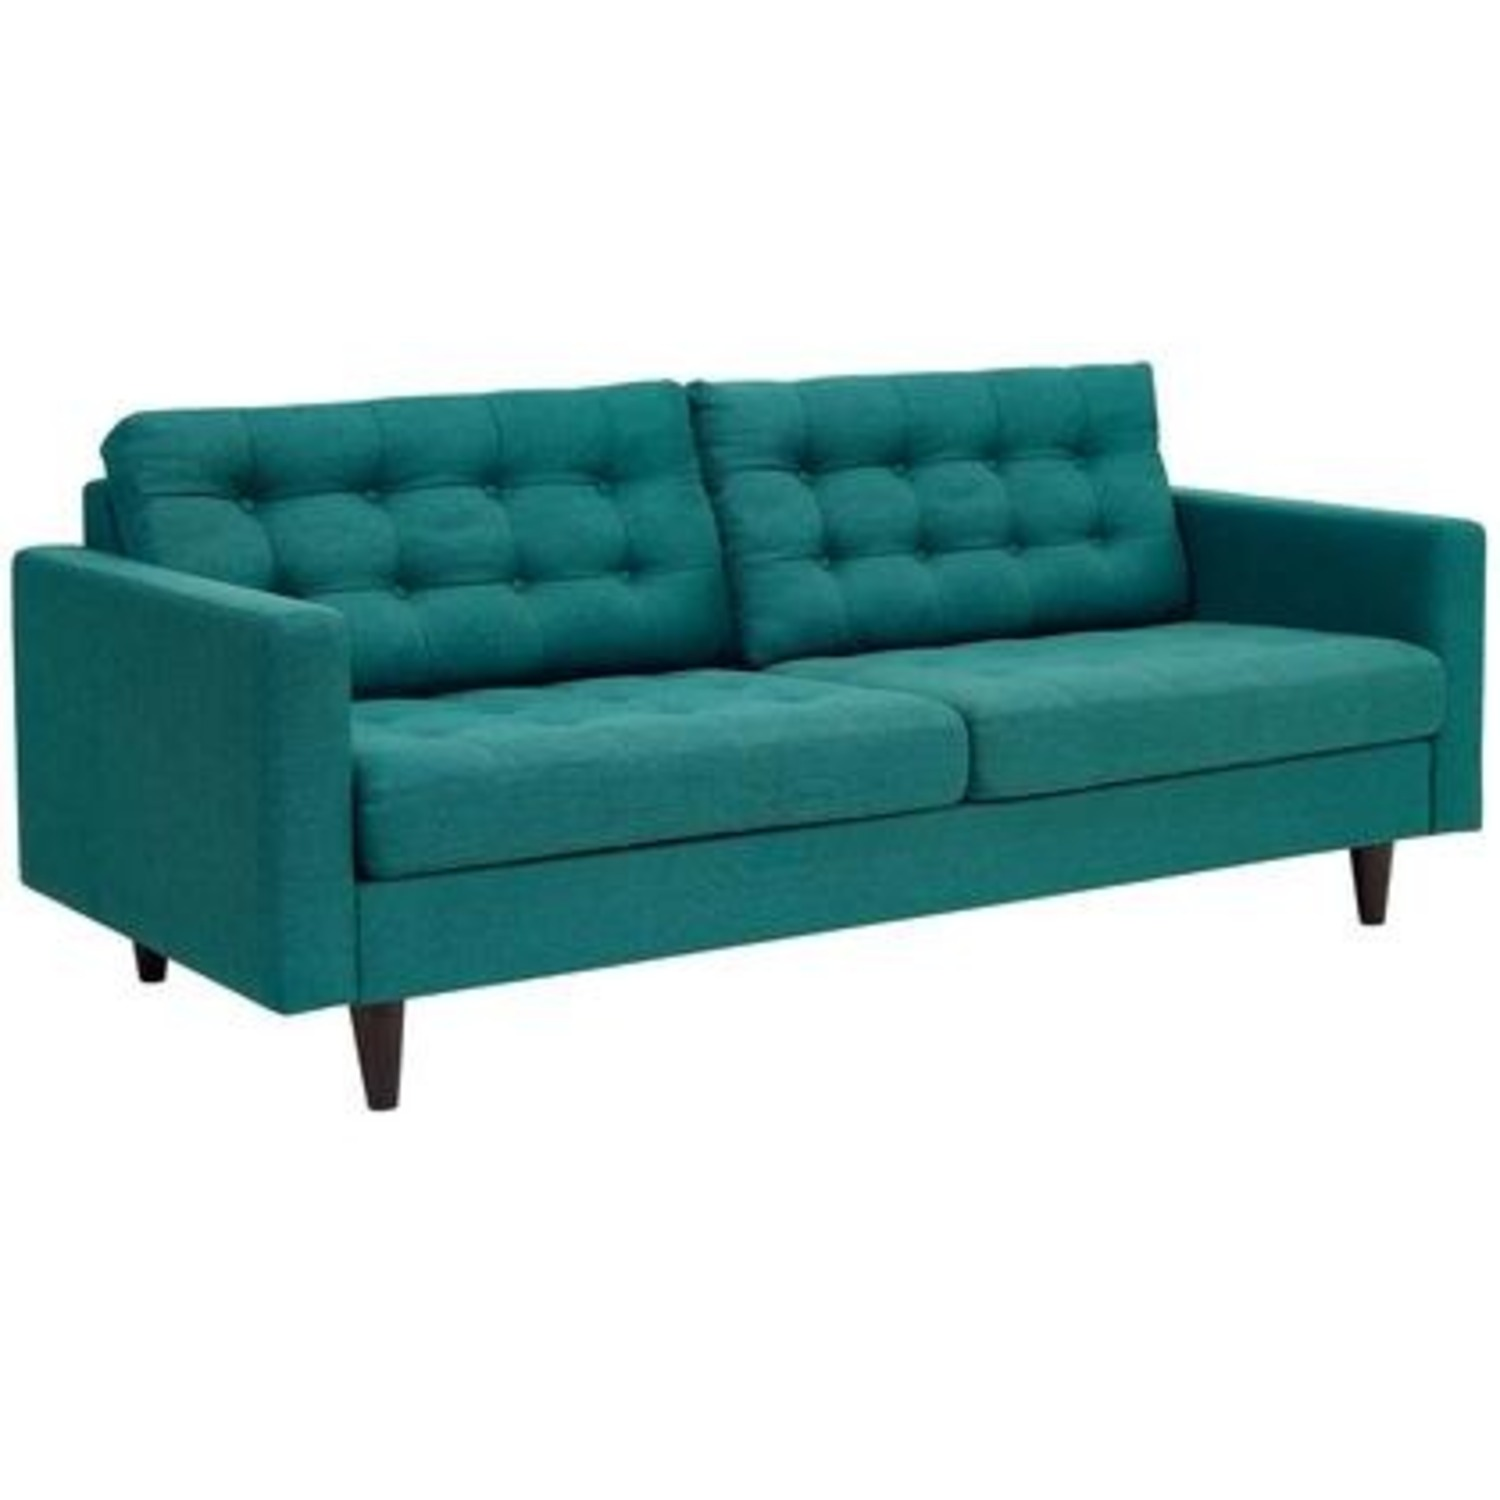 Modern Style Sofa In Teal Fabric W/ Tufted Buttons - image-0